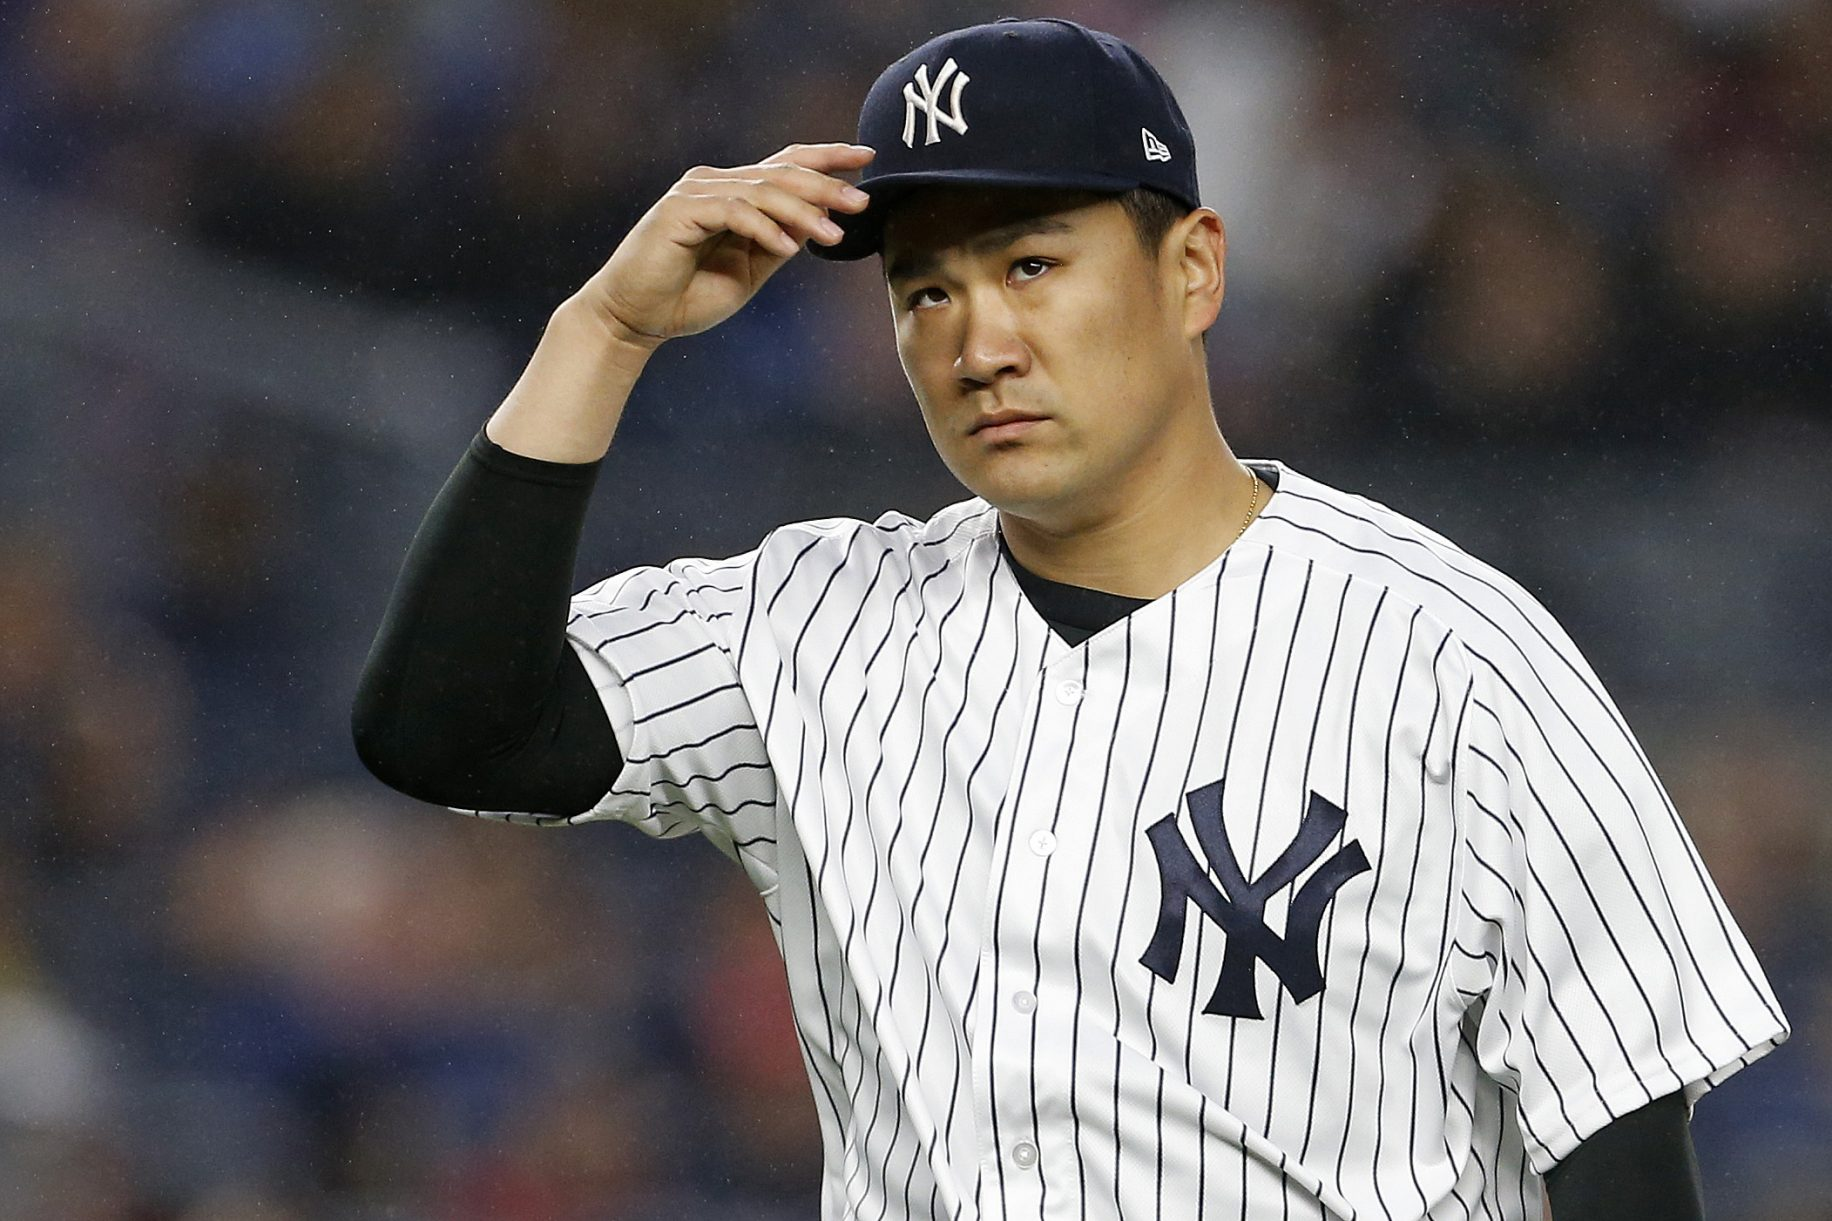 New York Yankees: Tonight Is Prime Opportunity To Right Masahiro Tanaka 3